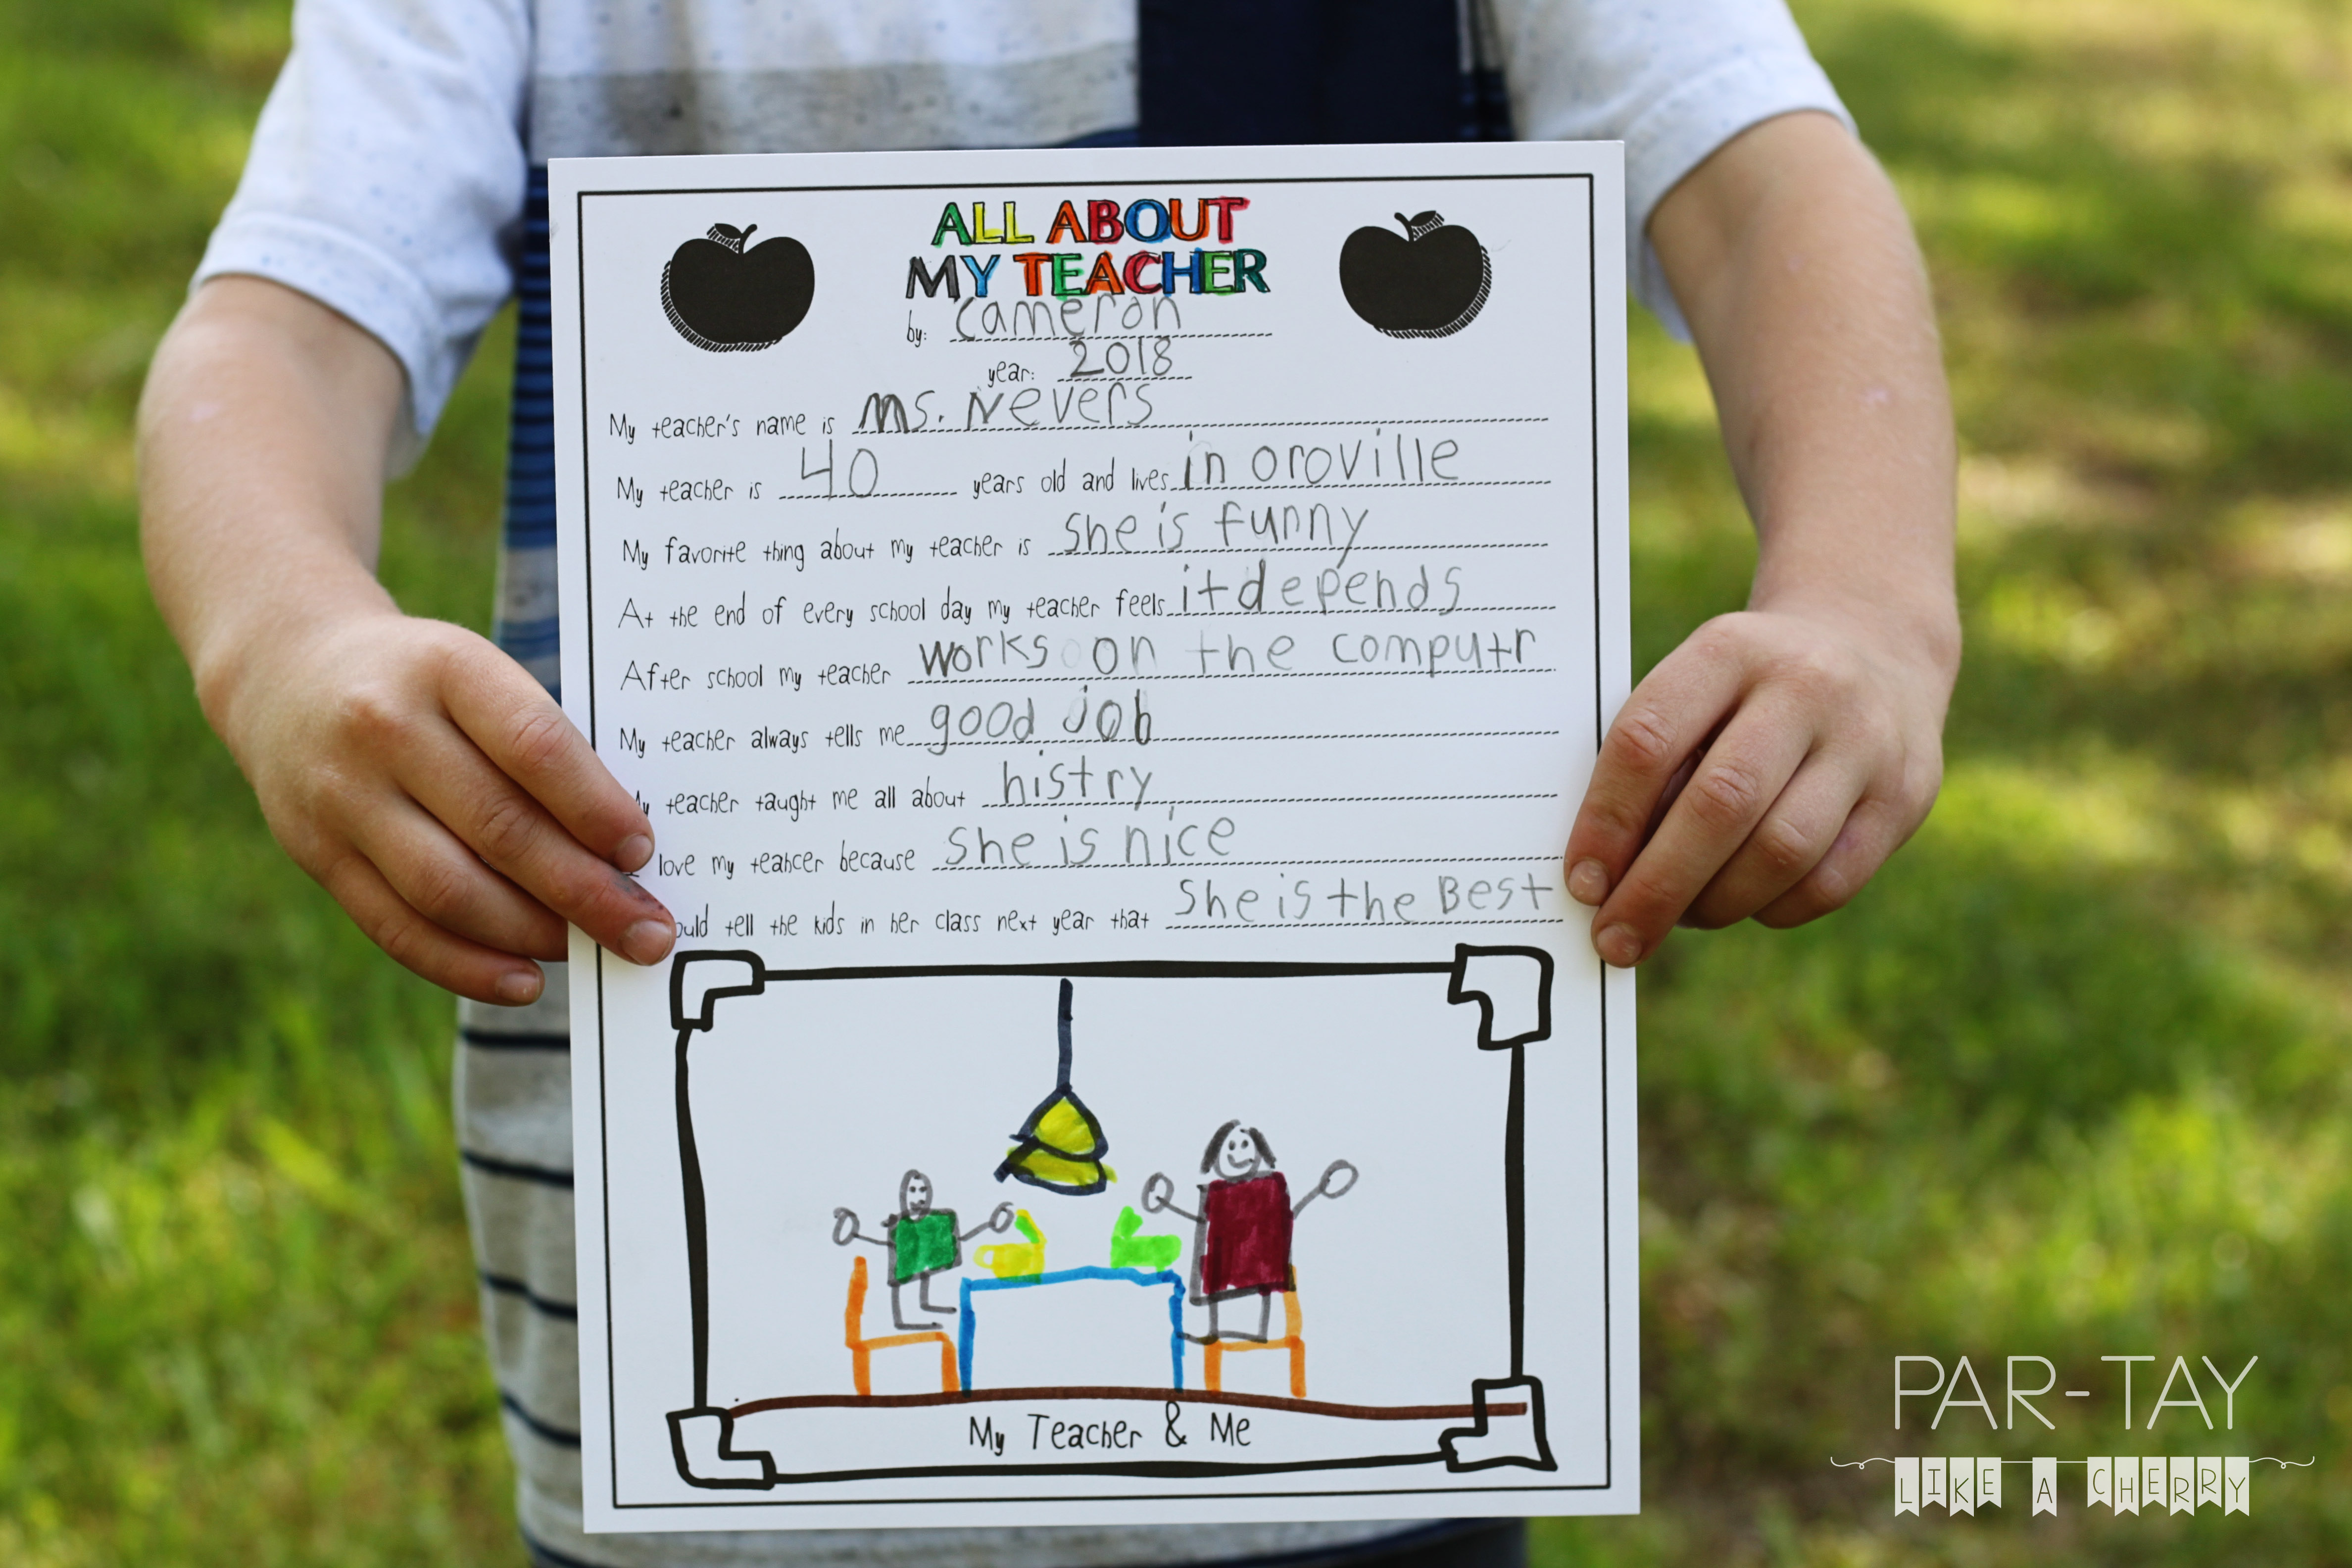 photograph regarding All About My Teacher Free Printable titled All Regarding My Instructor- No cost Trainer Appreciation Printable